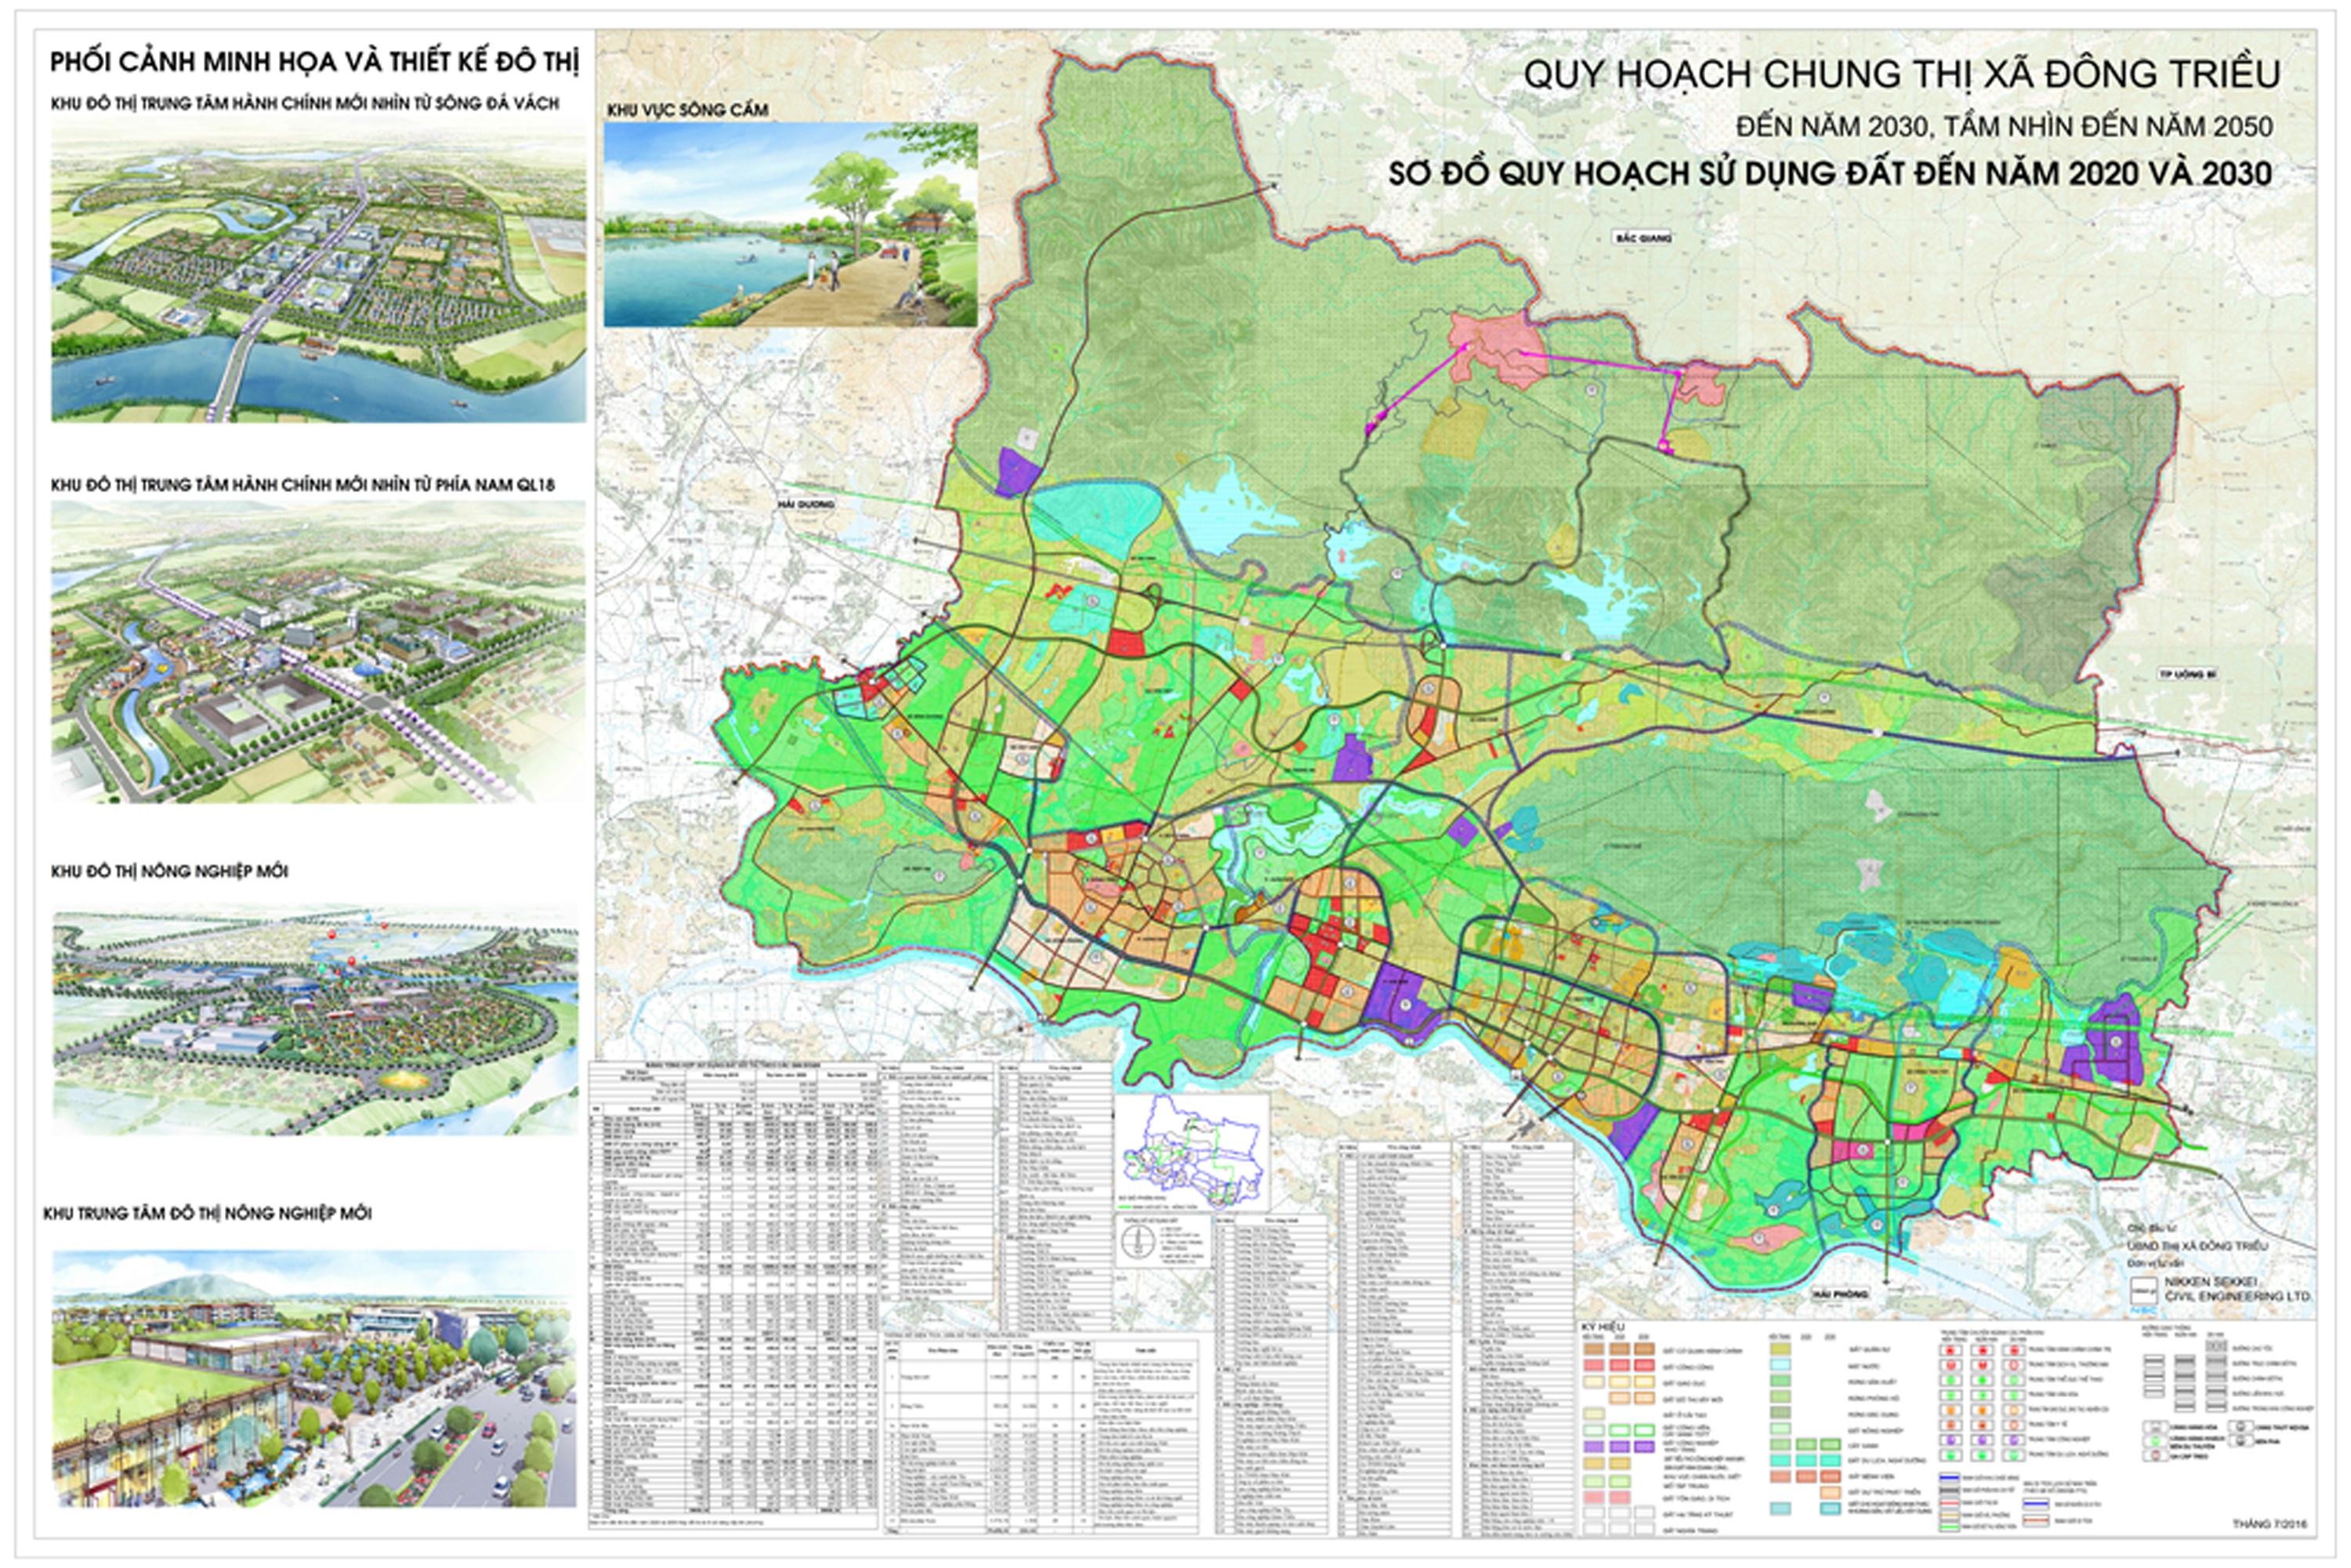 GENERAL PLANNING FOR CONSTRUCTION OF DONG TRIEU TOWN, QUANG NINH PROVINCE, TILL 2030 VISION TO 2050